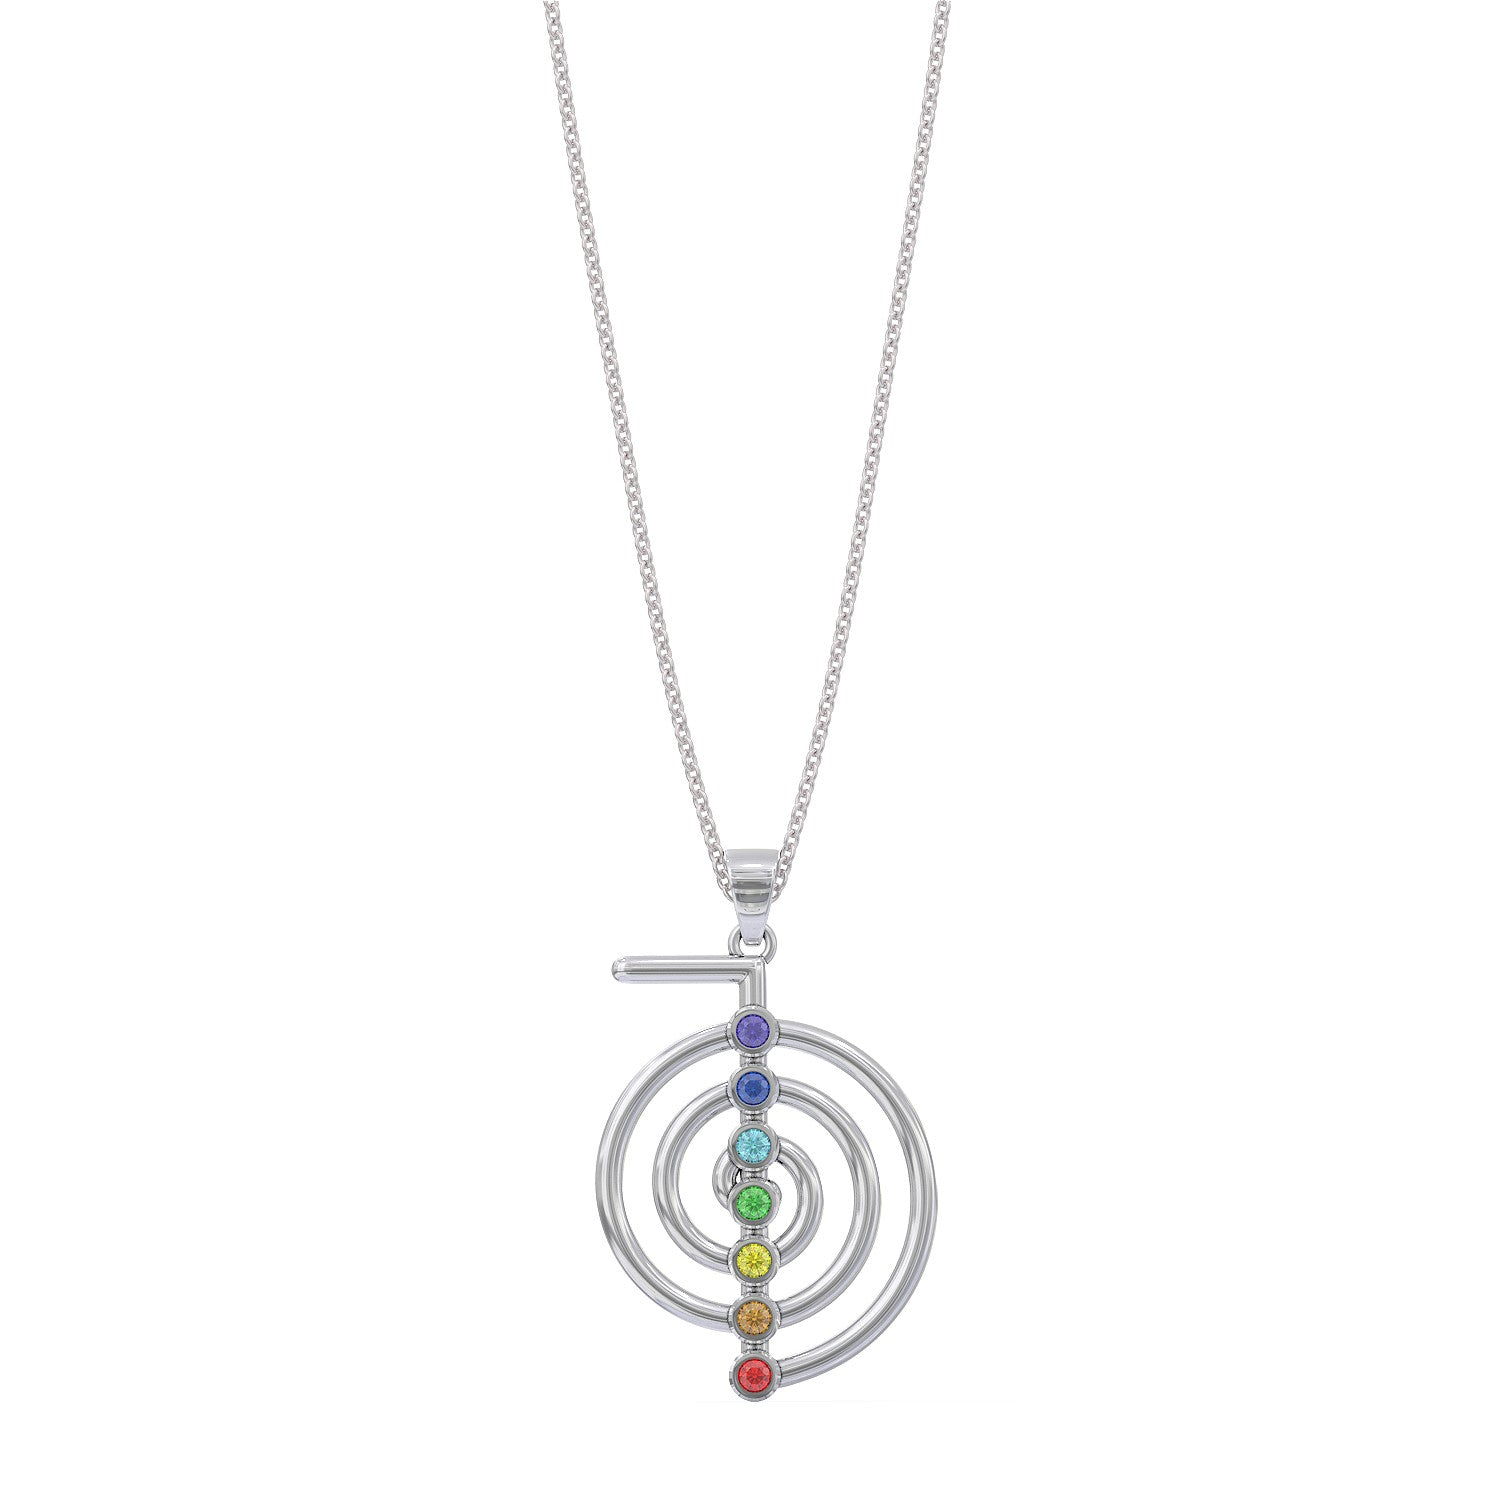 Reiki Cho Ku Rei Symbol With Chakra Stones Necklace Shineon